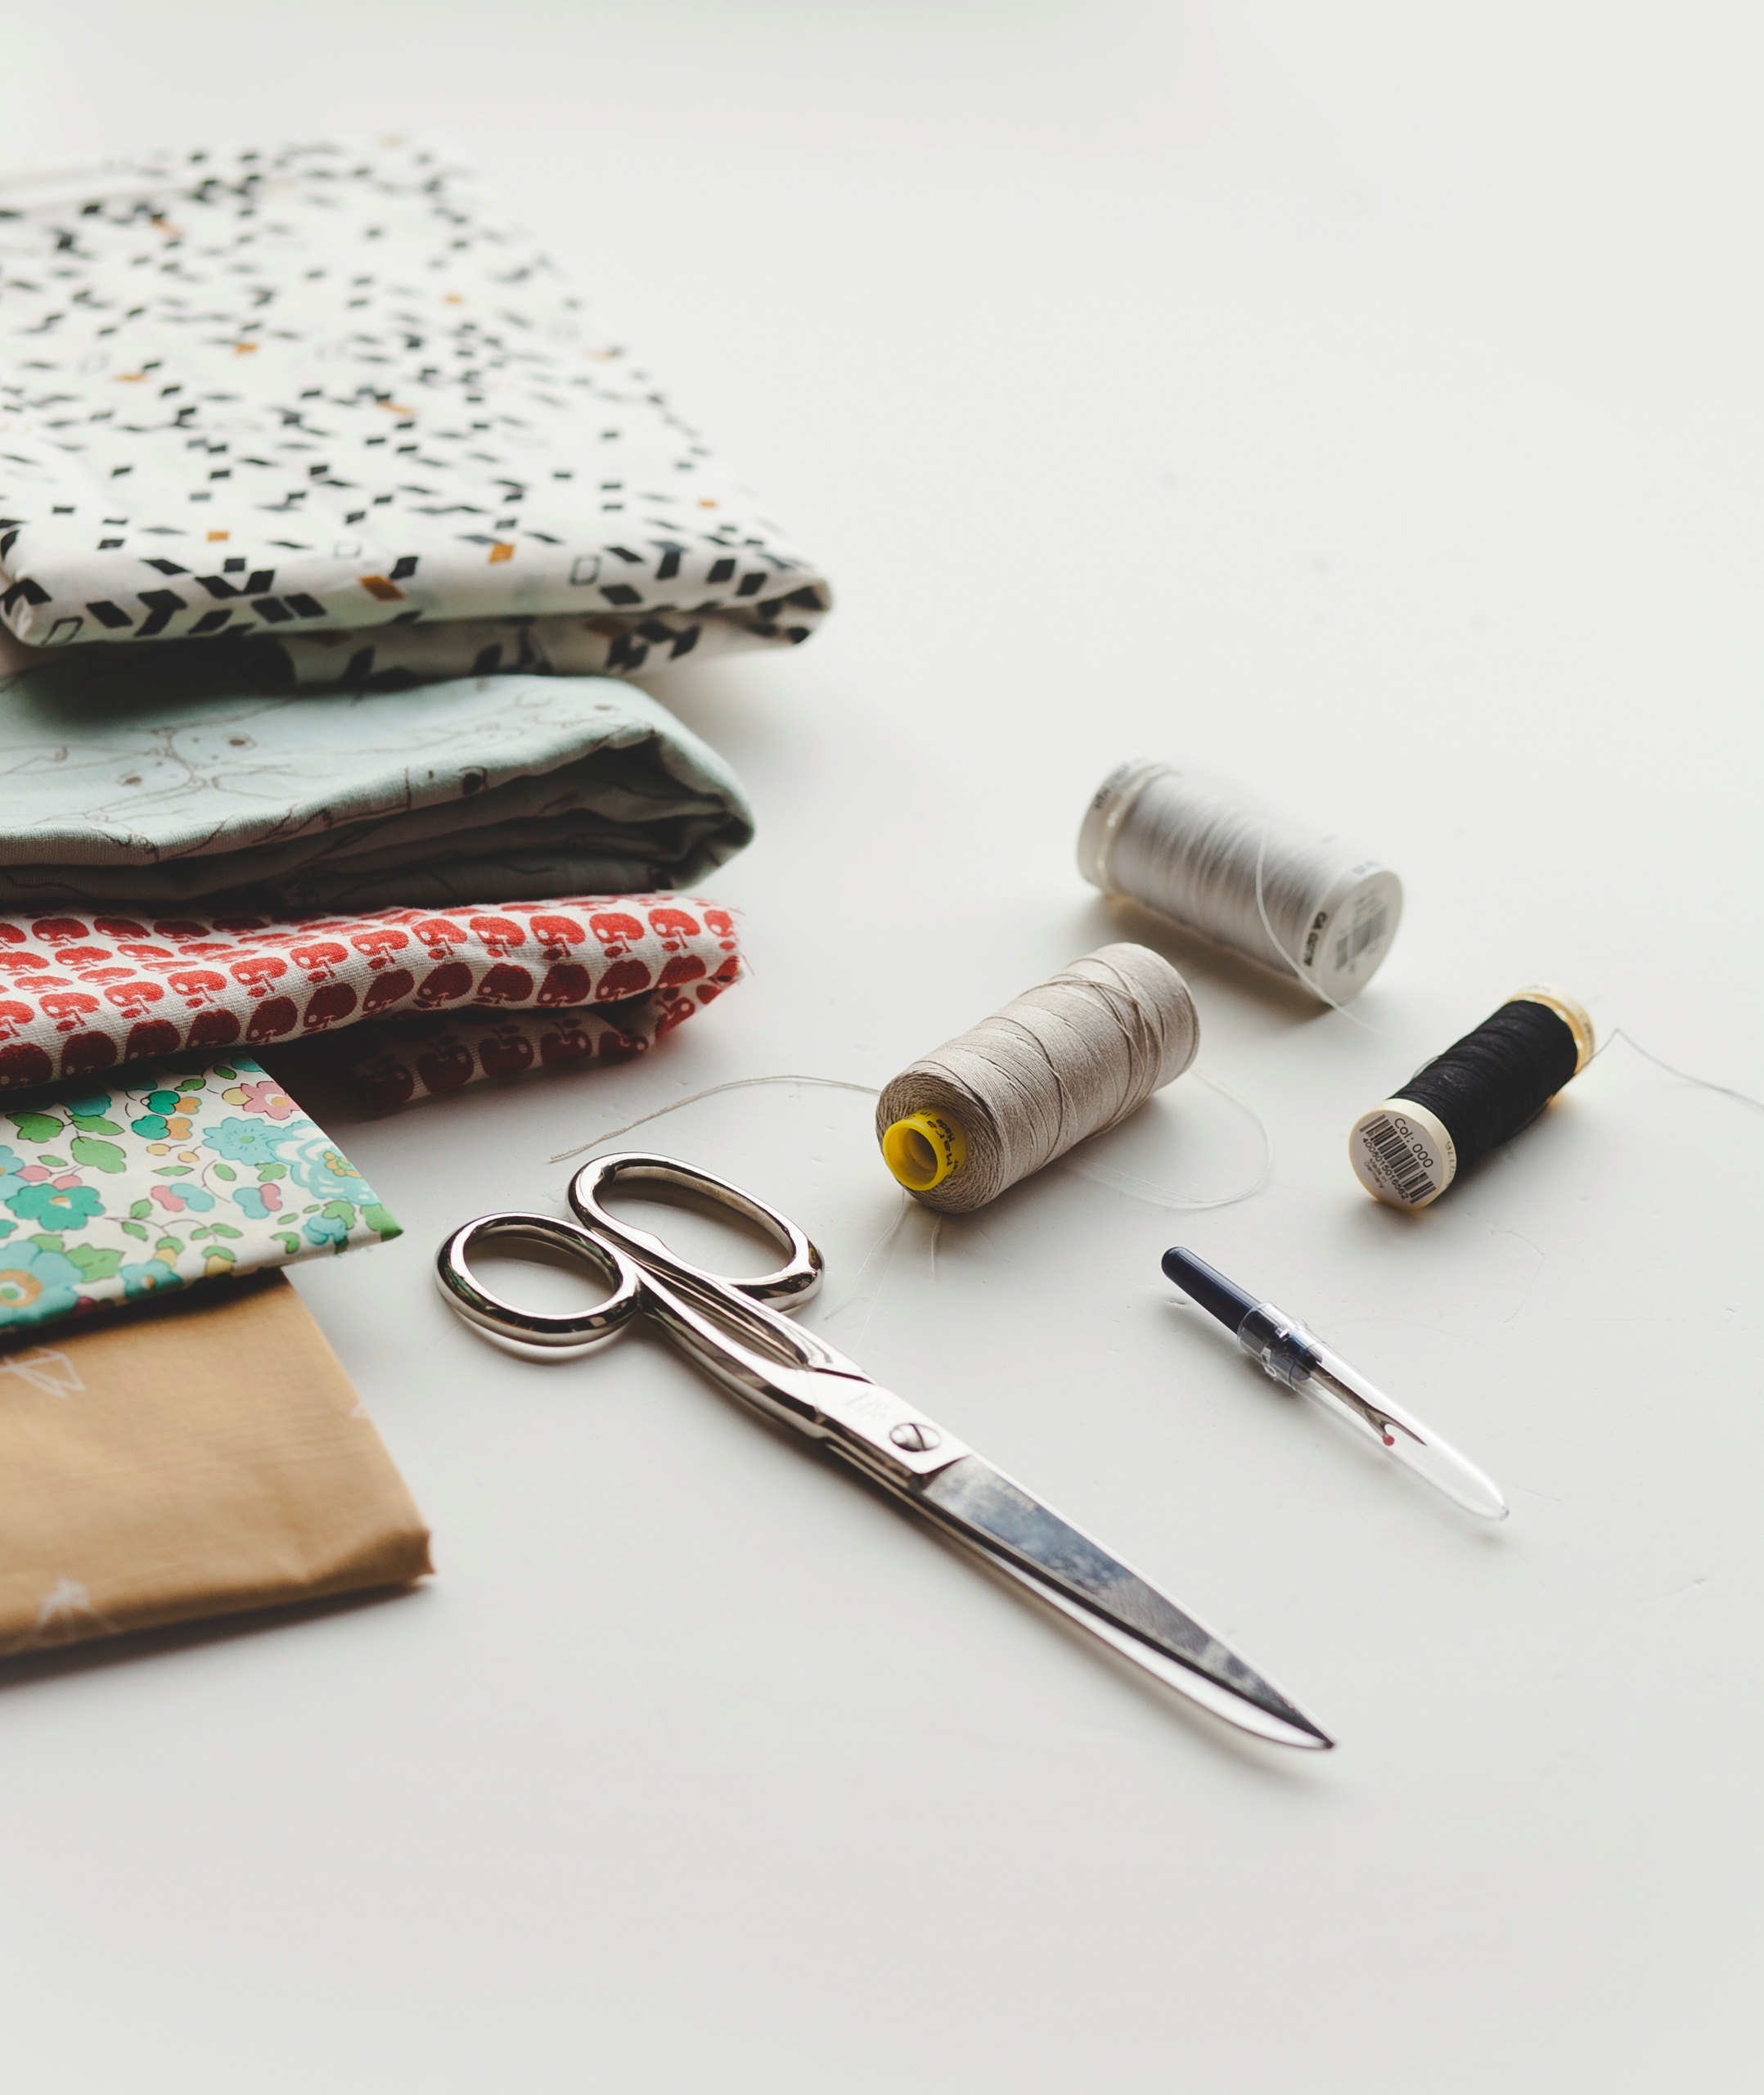 Sewing day - handmade, slowfashion - lehandmade | ello